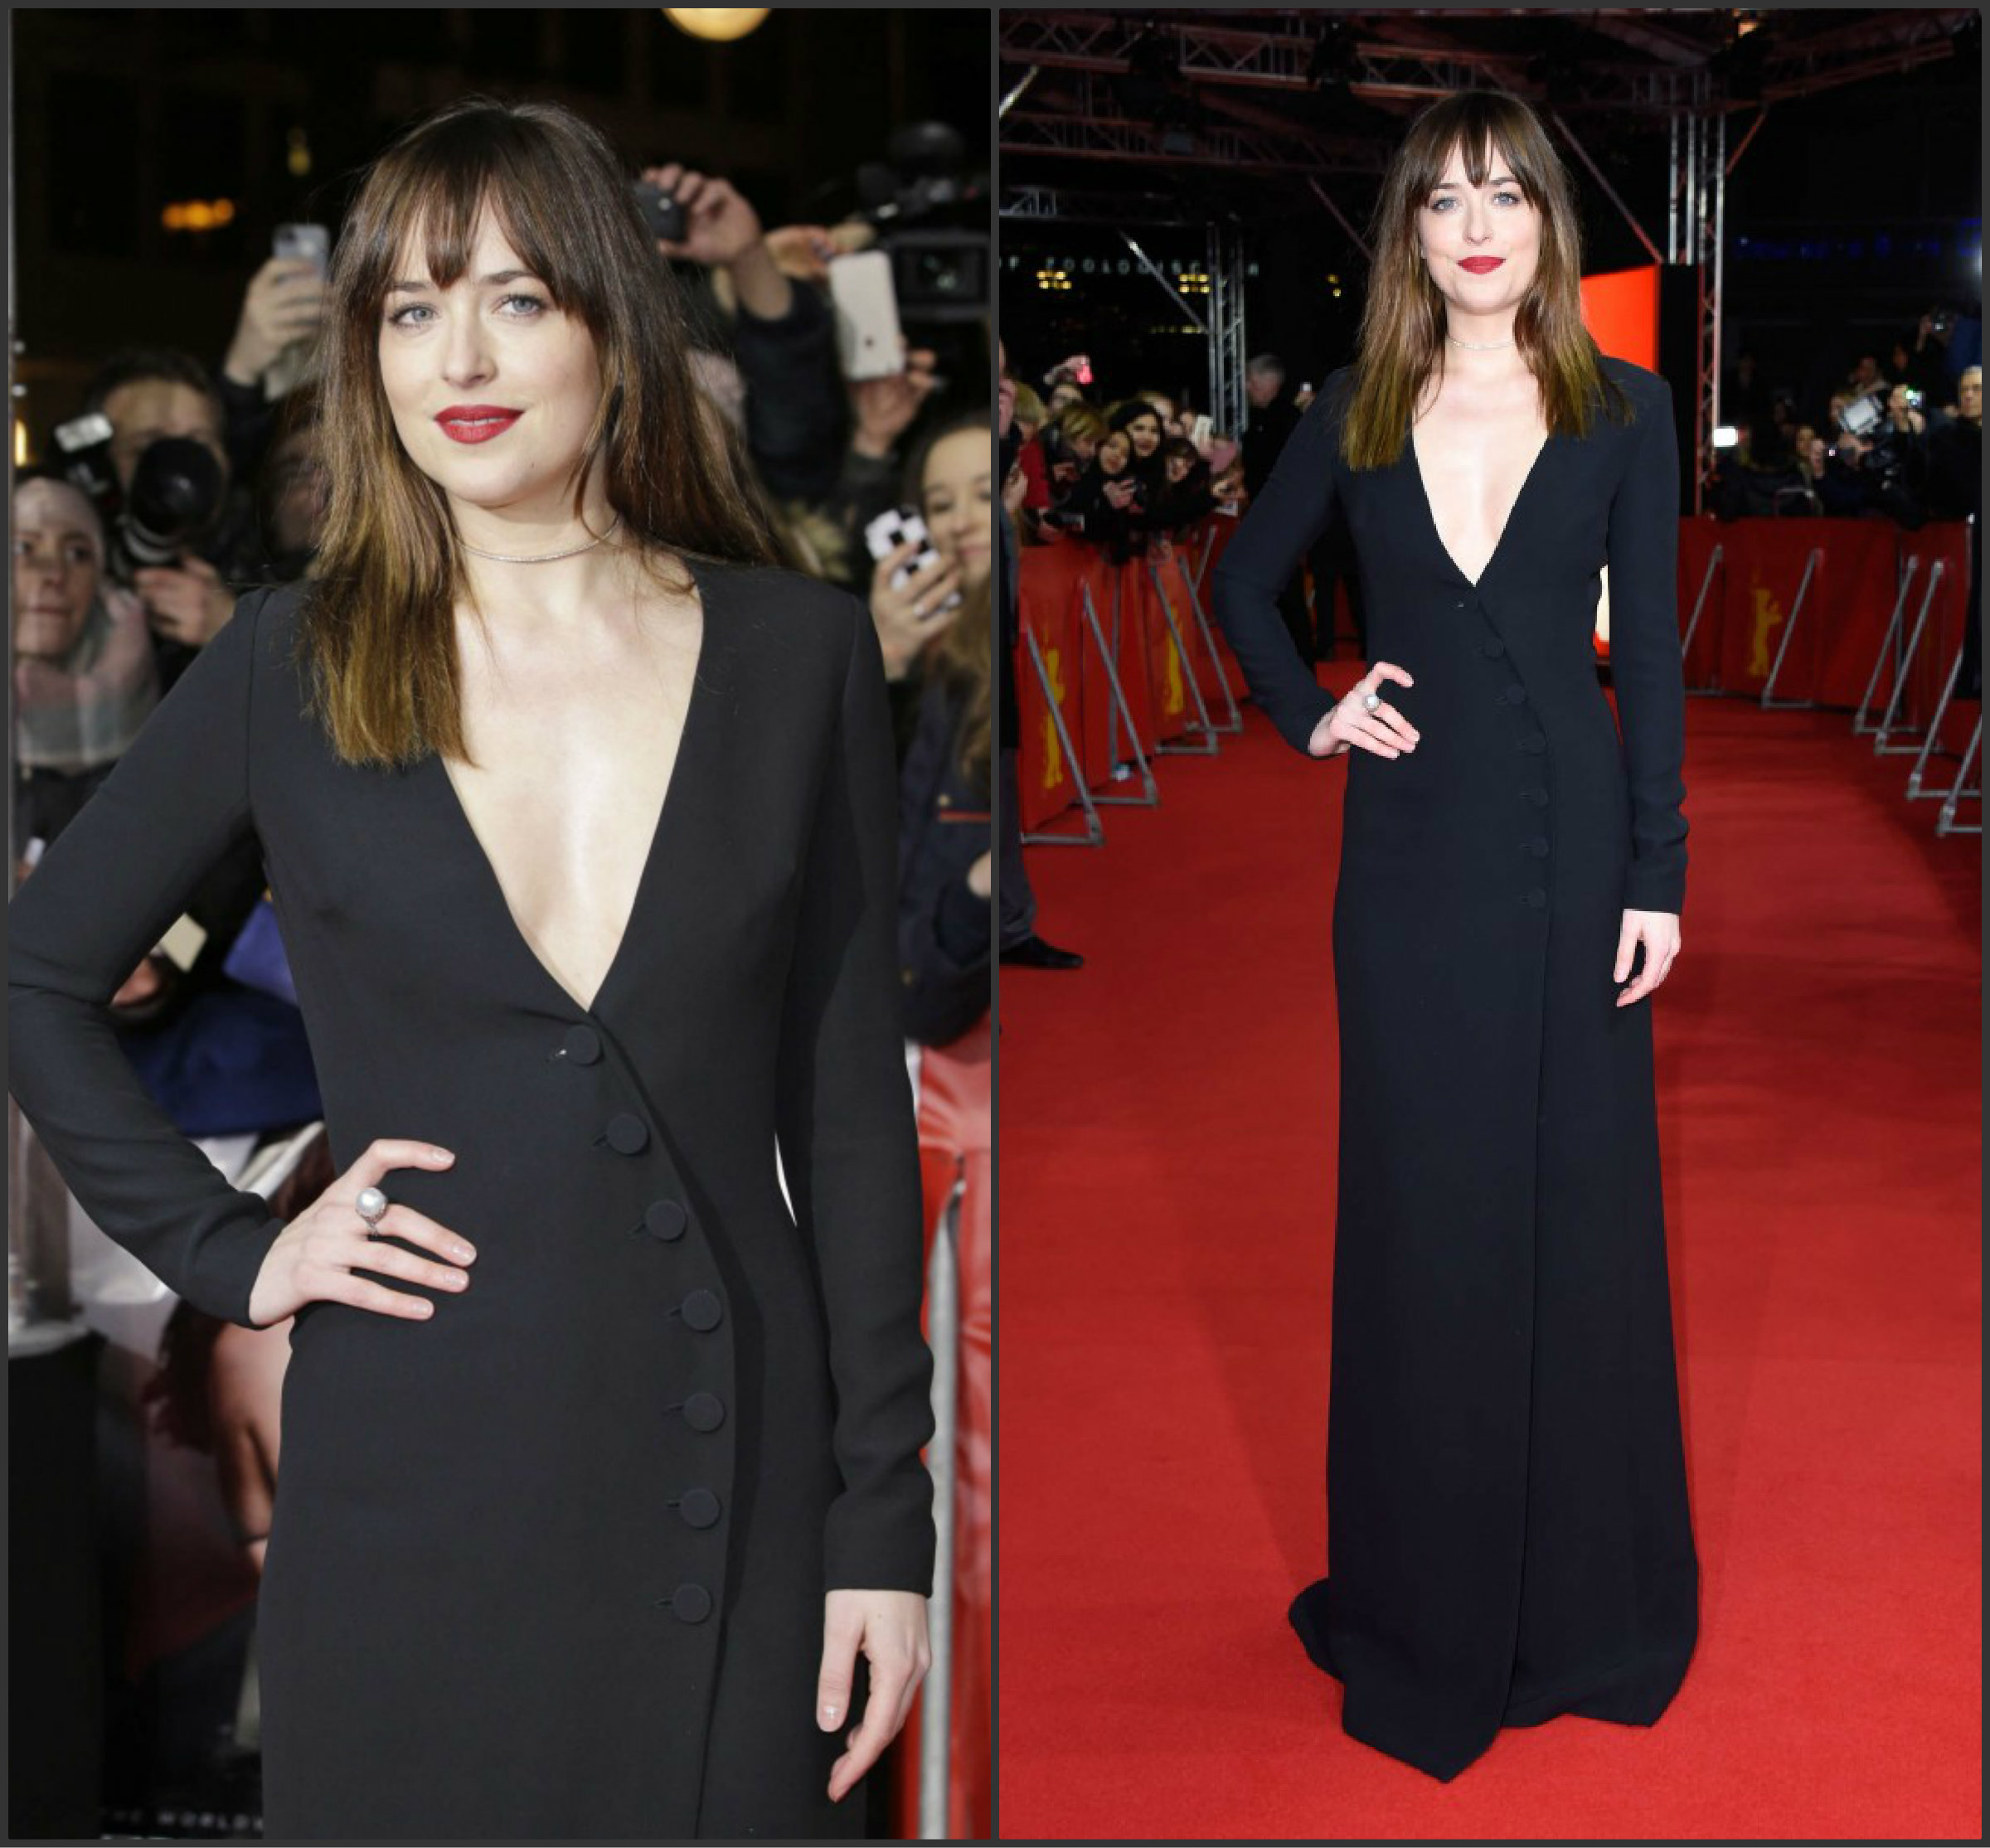 Dakota-Johnson-in-Christian-Dior-at0the-Fifty-Shades-Of-Grey-Berlin-Film-Festival-Premiere